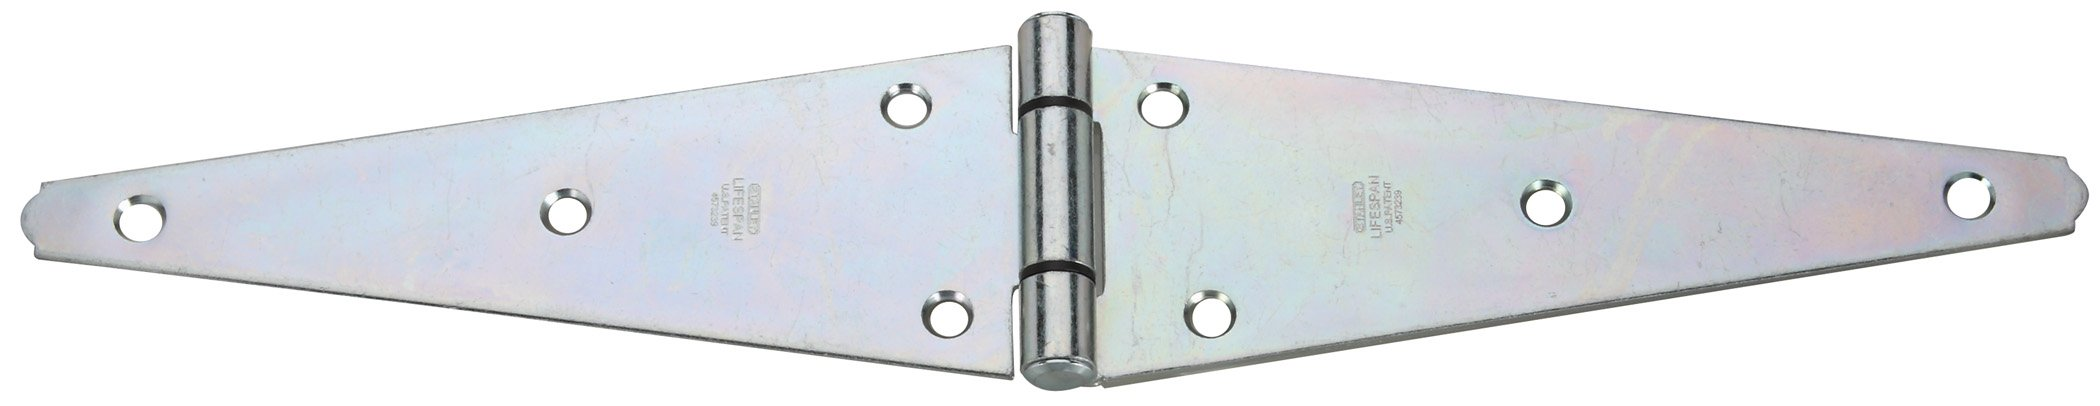 Stanley Hardware 14-1720 Heavy Duty Strap Hinges